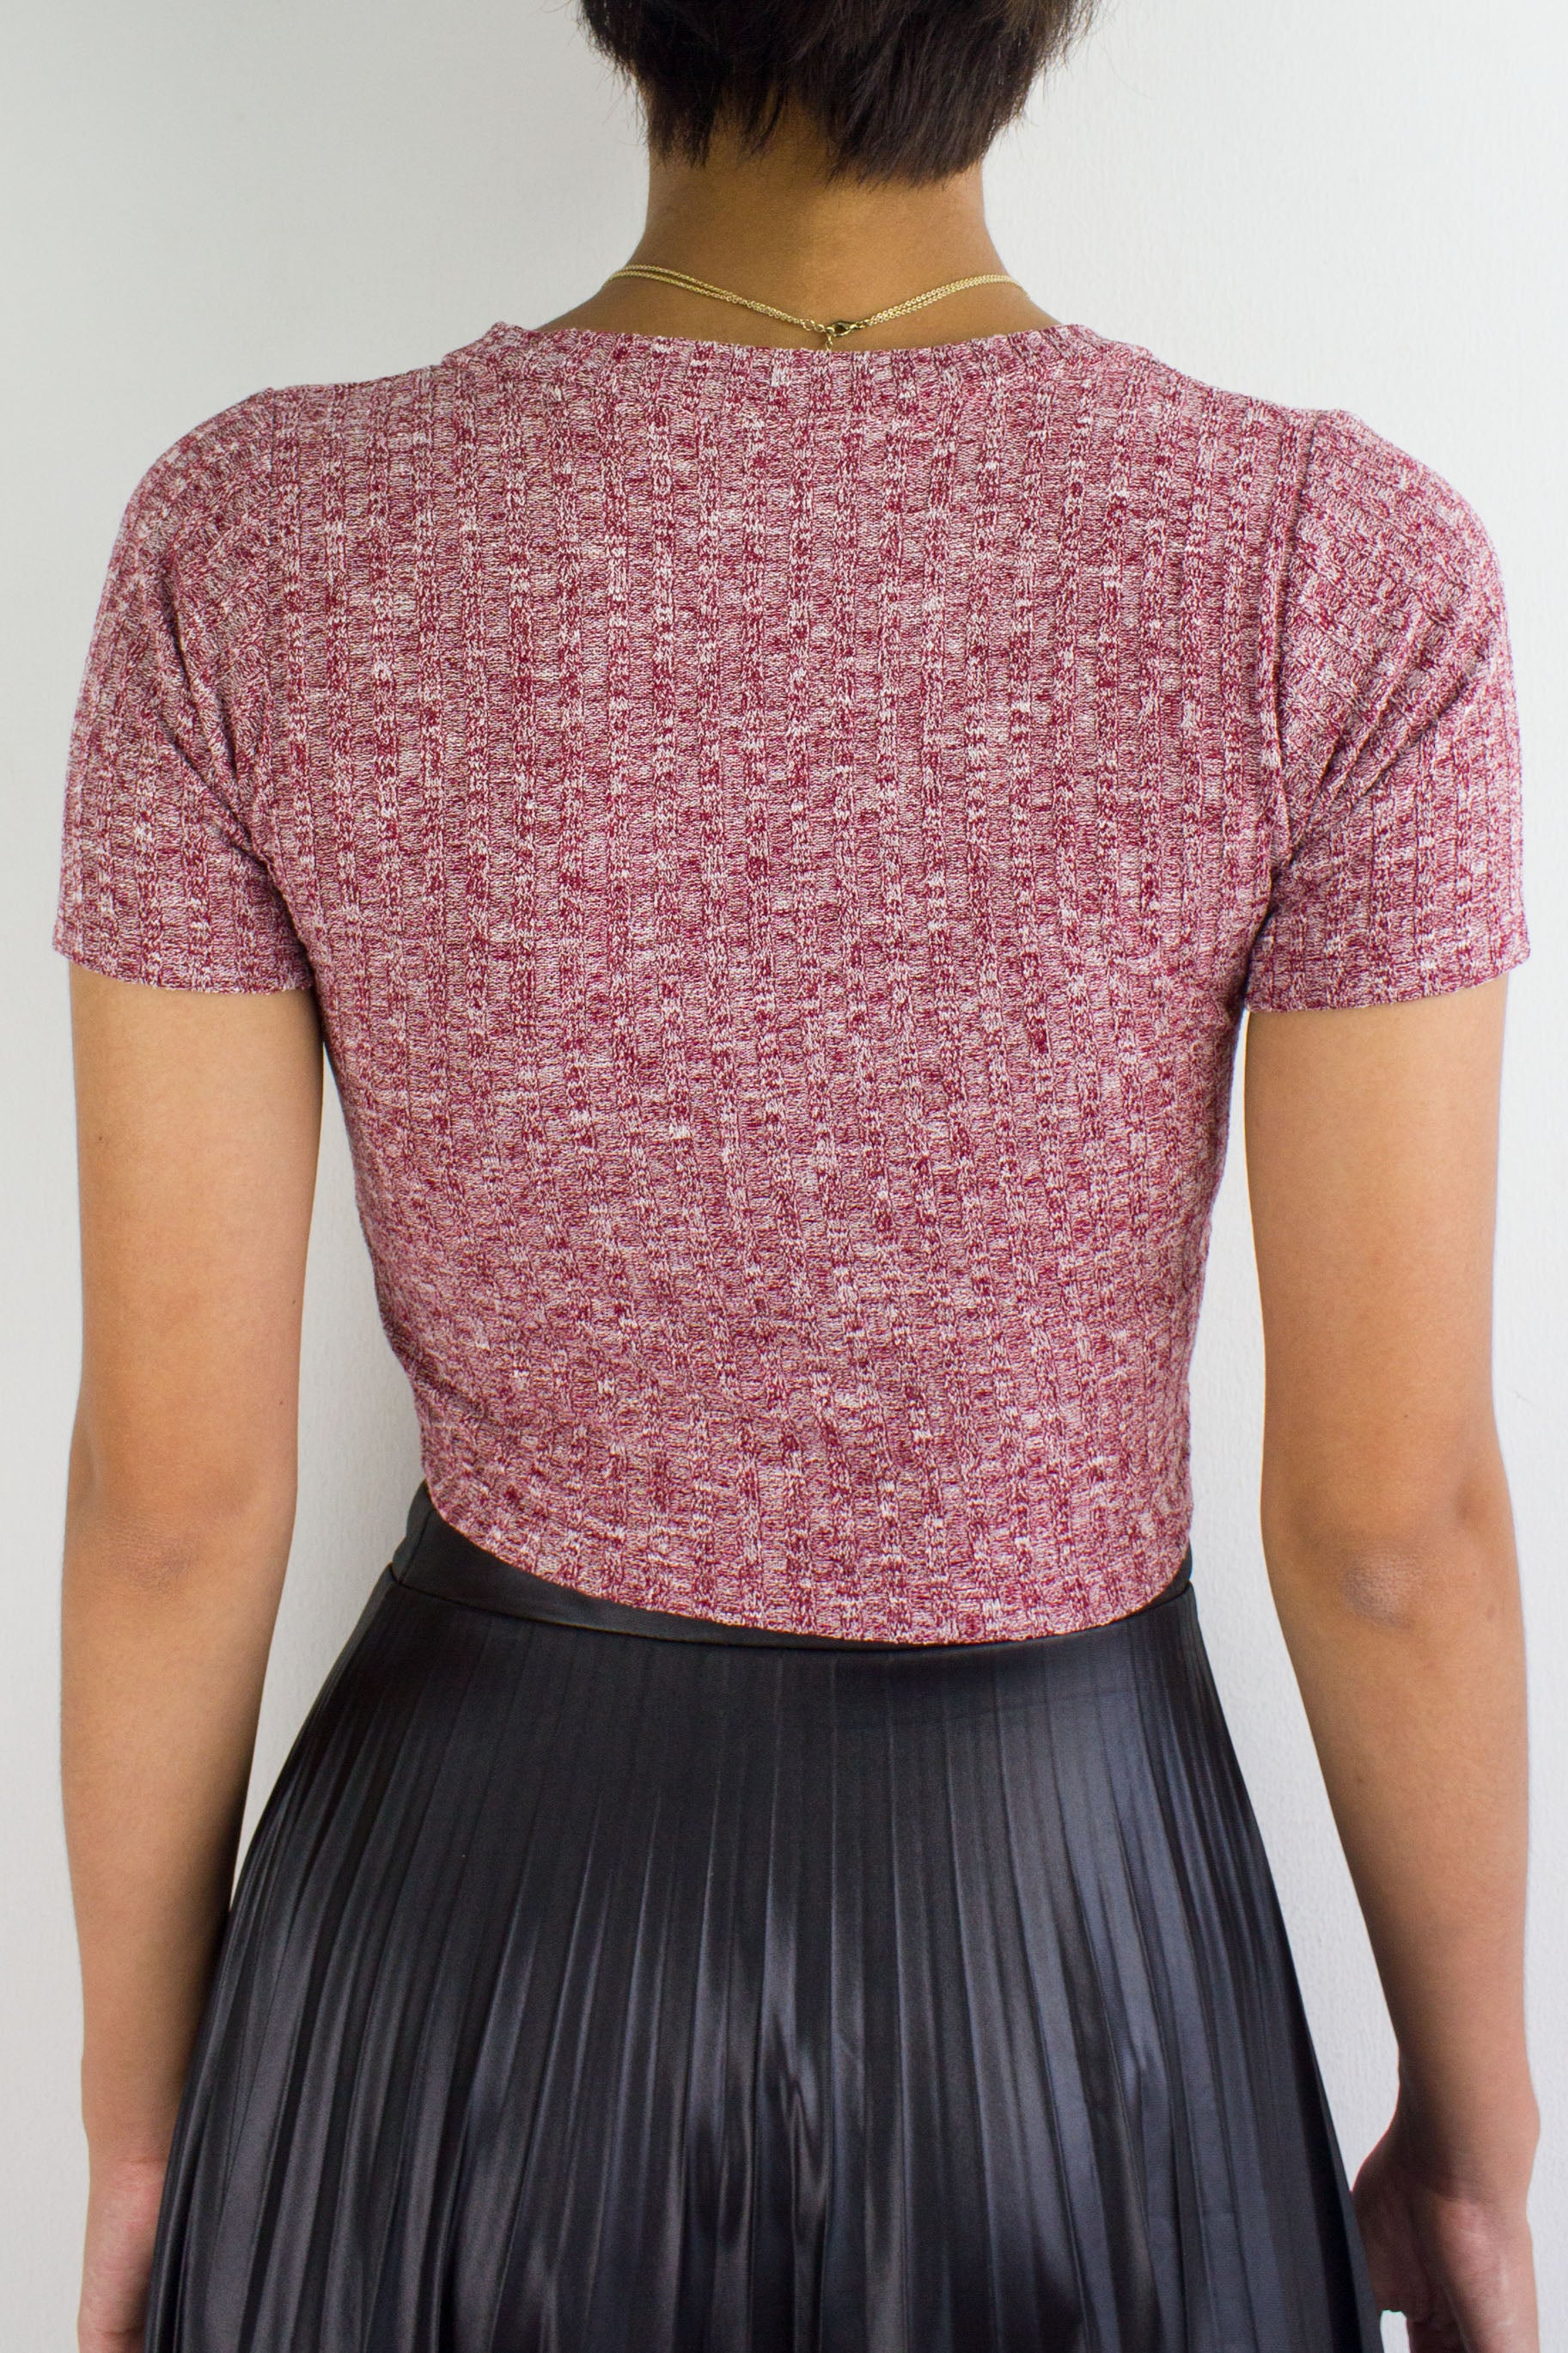 Sadie Speckled Crop Top in Red